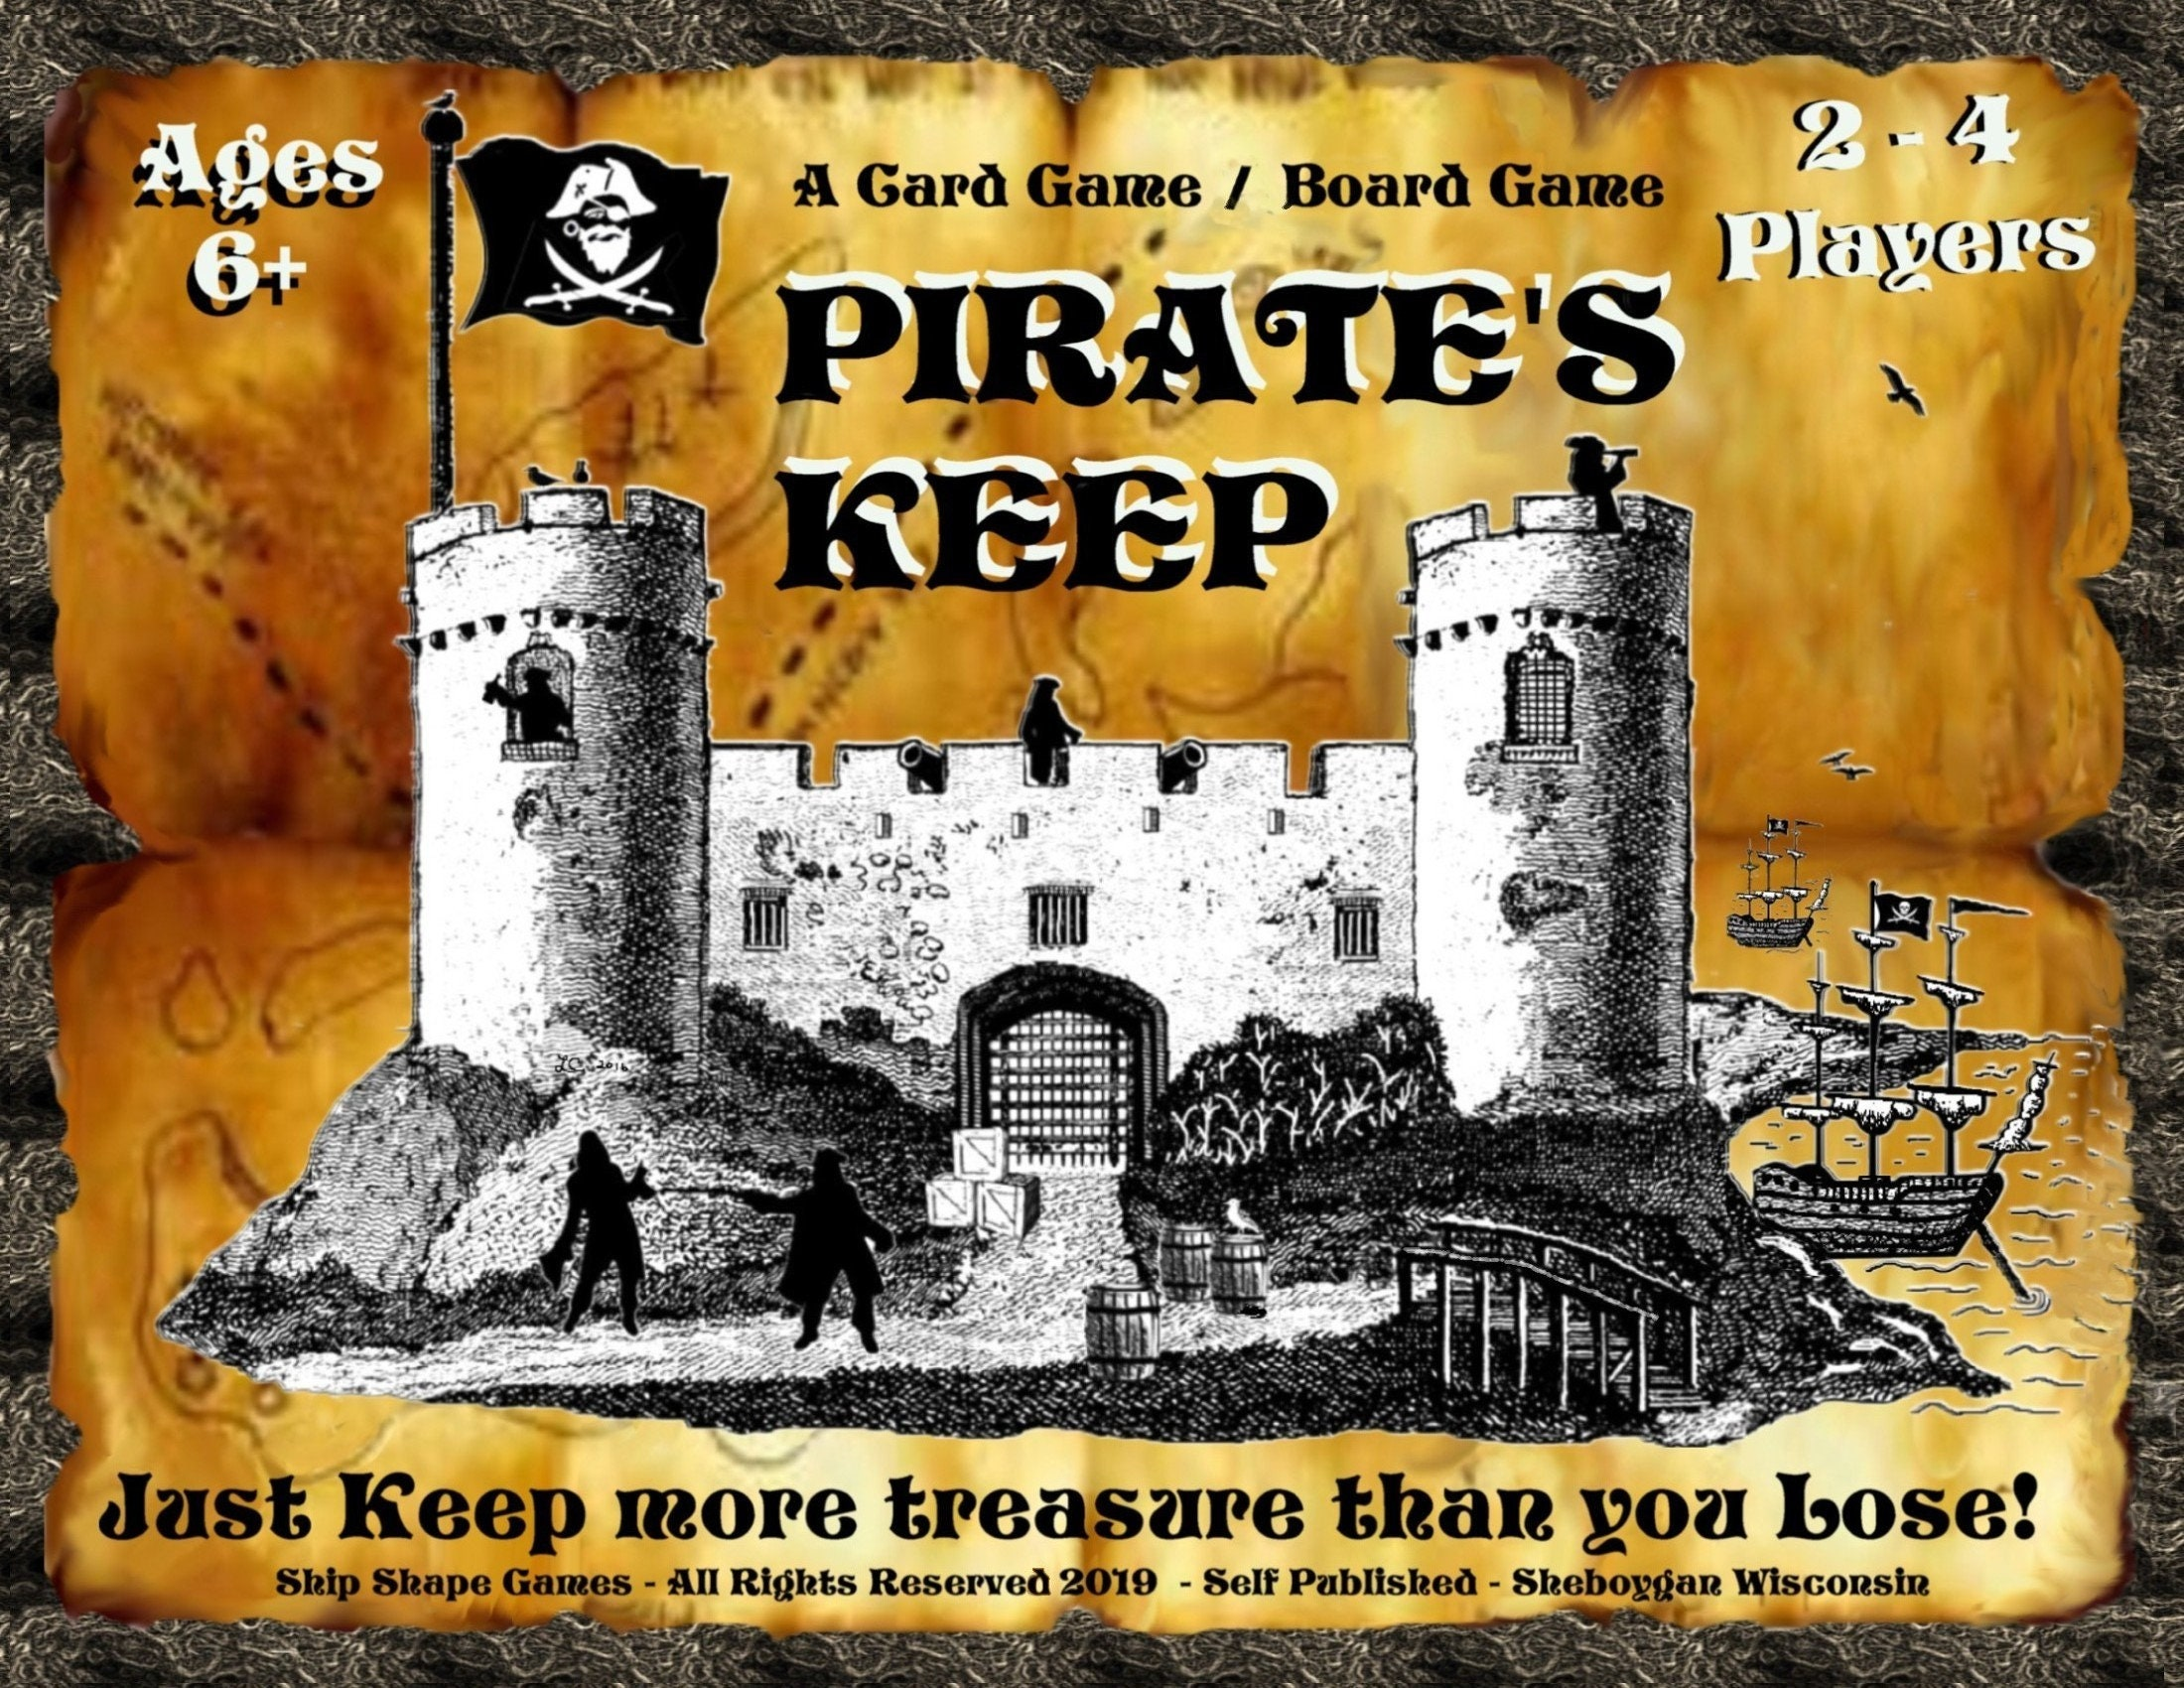 Pirates Keep Board Game - Kids will love the Stinky Cod, in